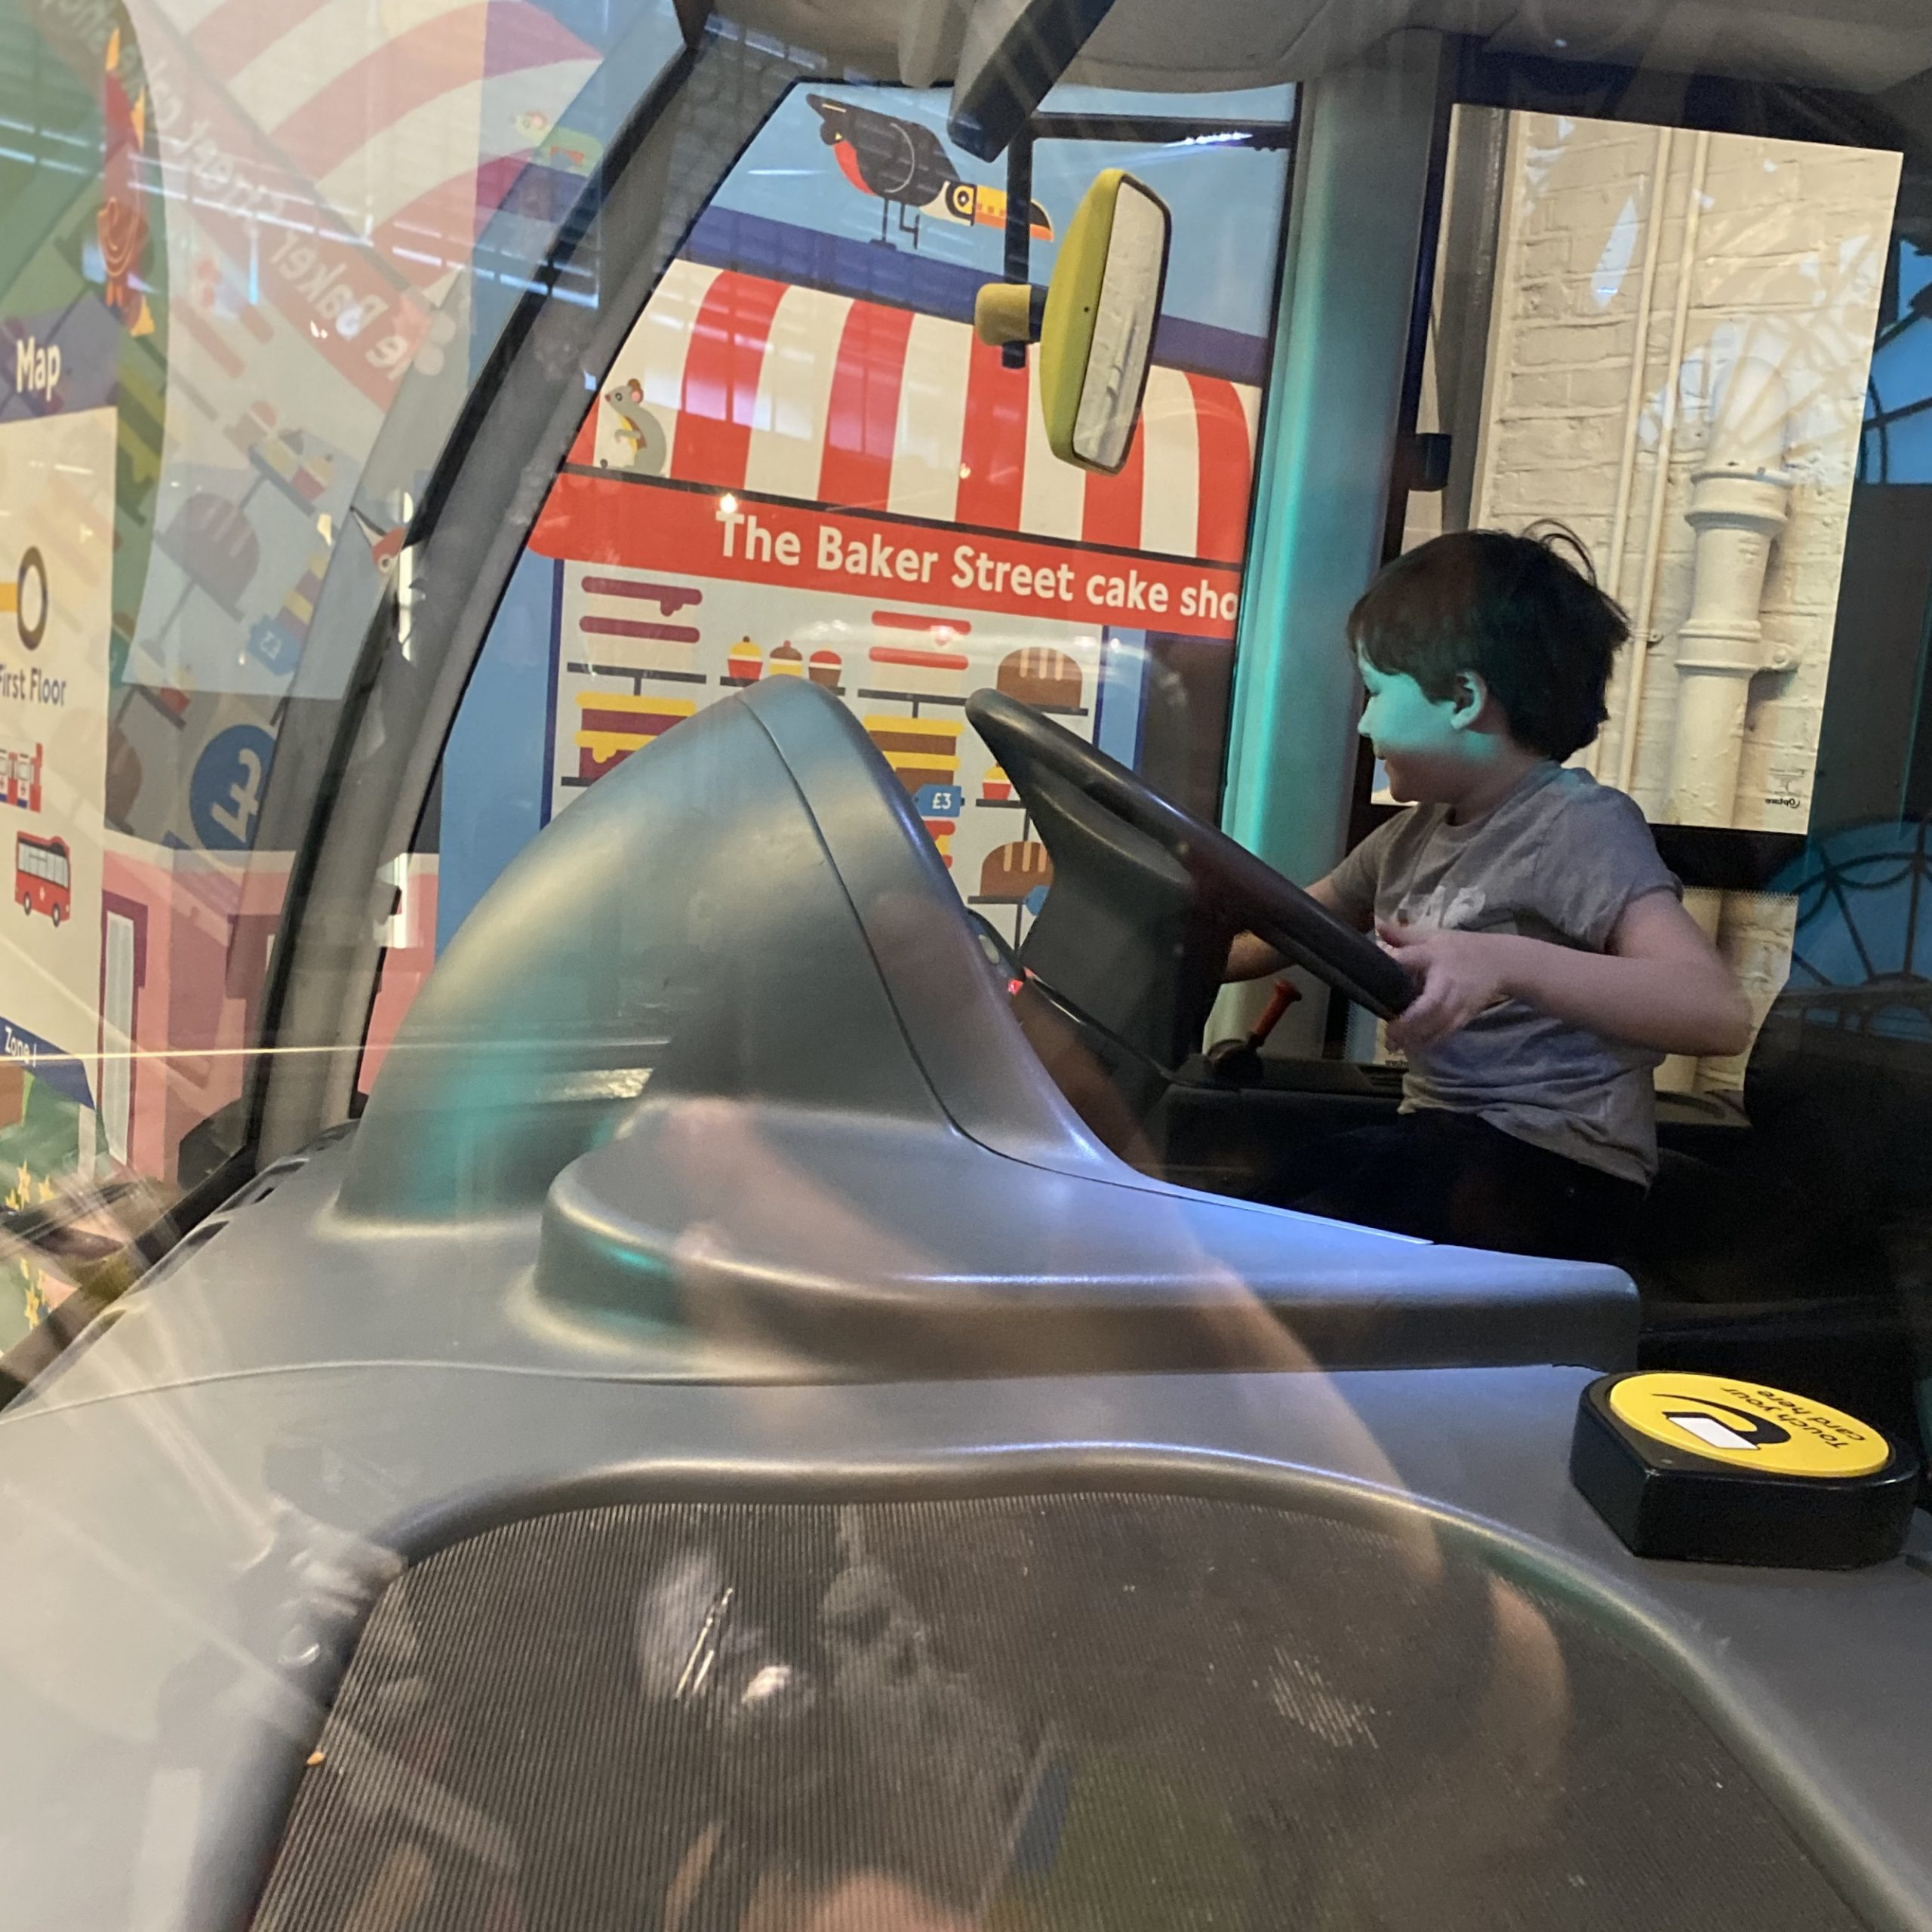 A boy driving a play bus at the LT museum